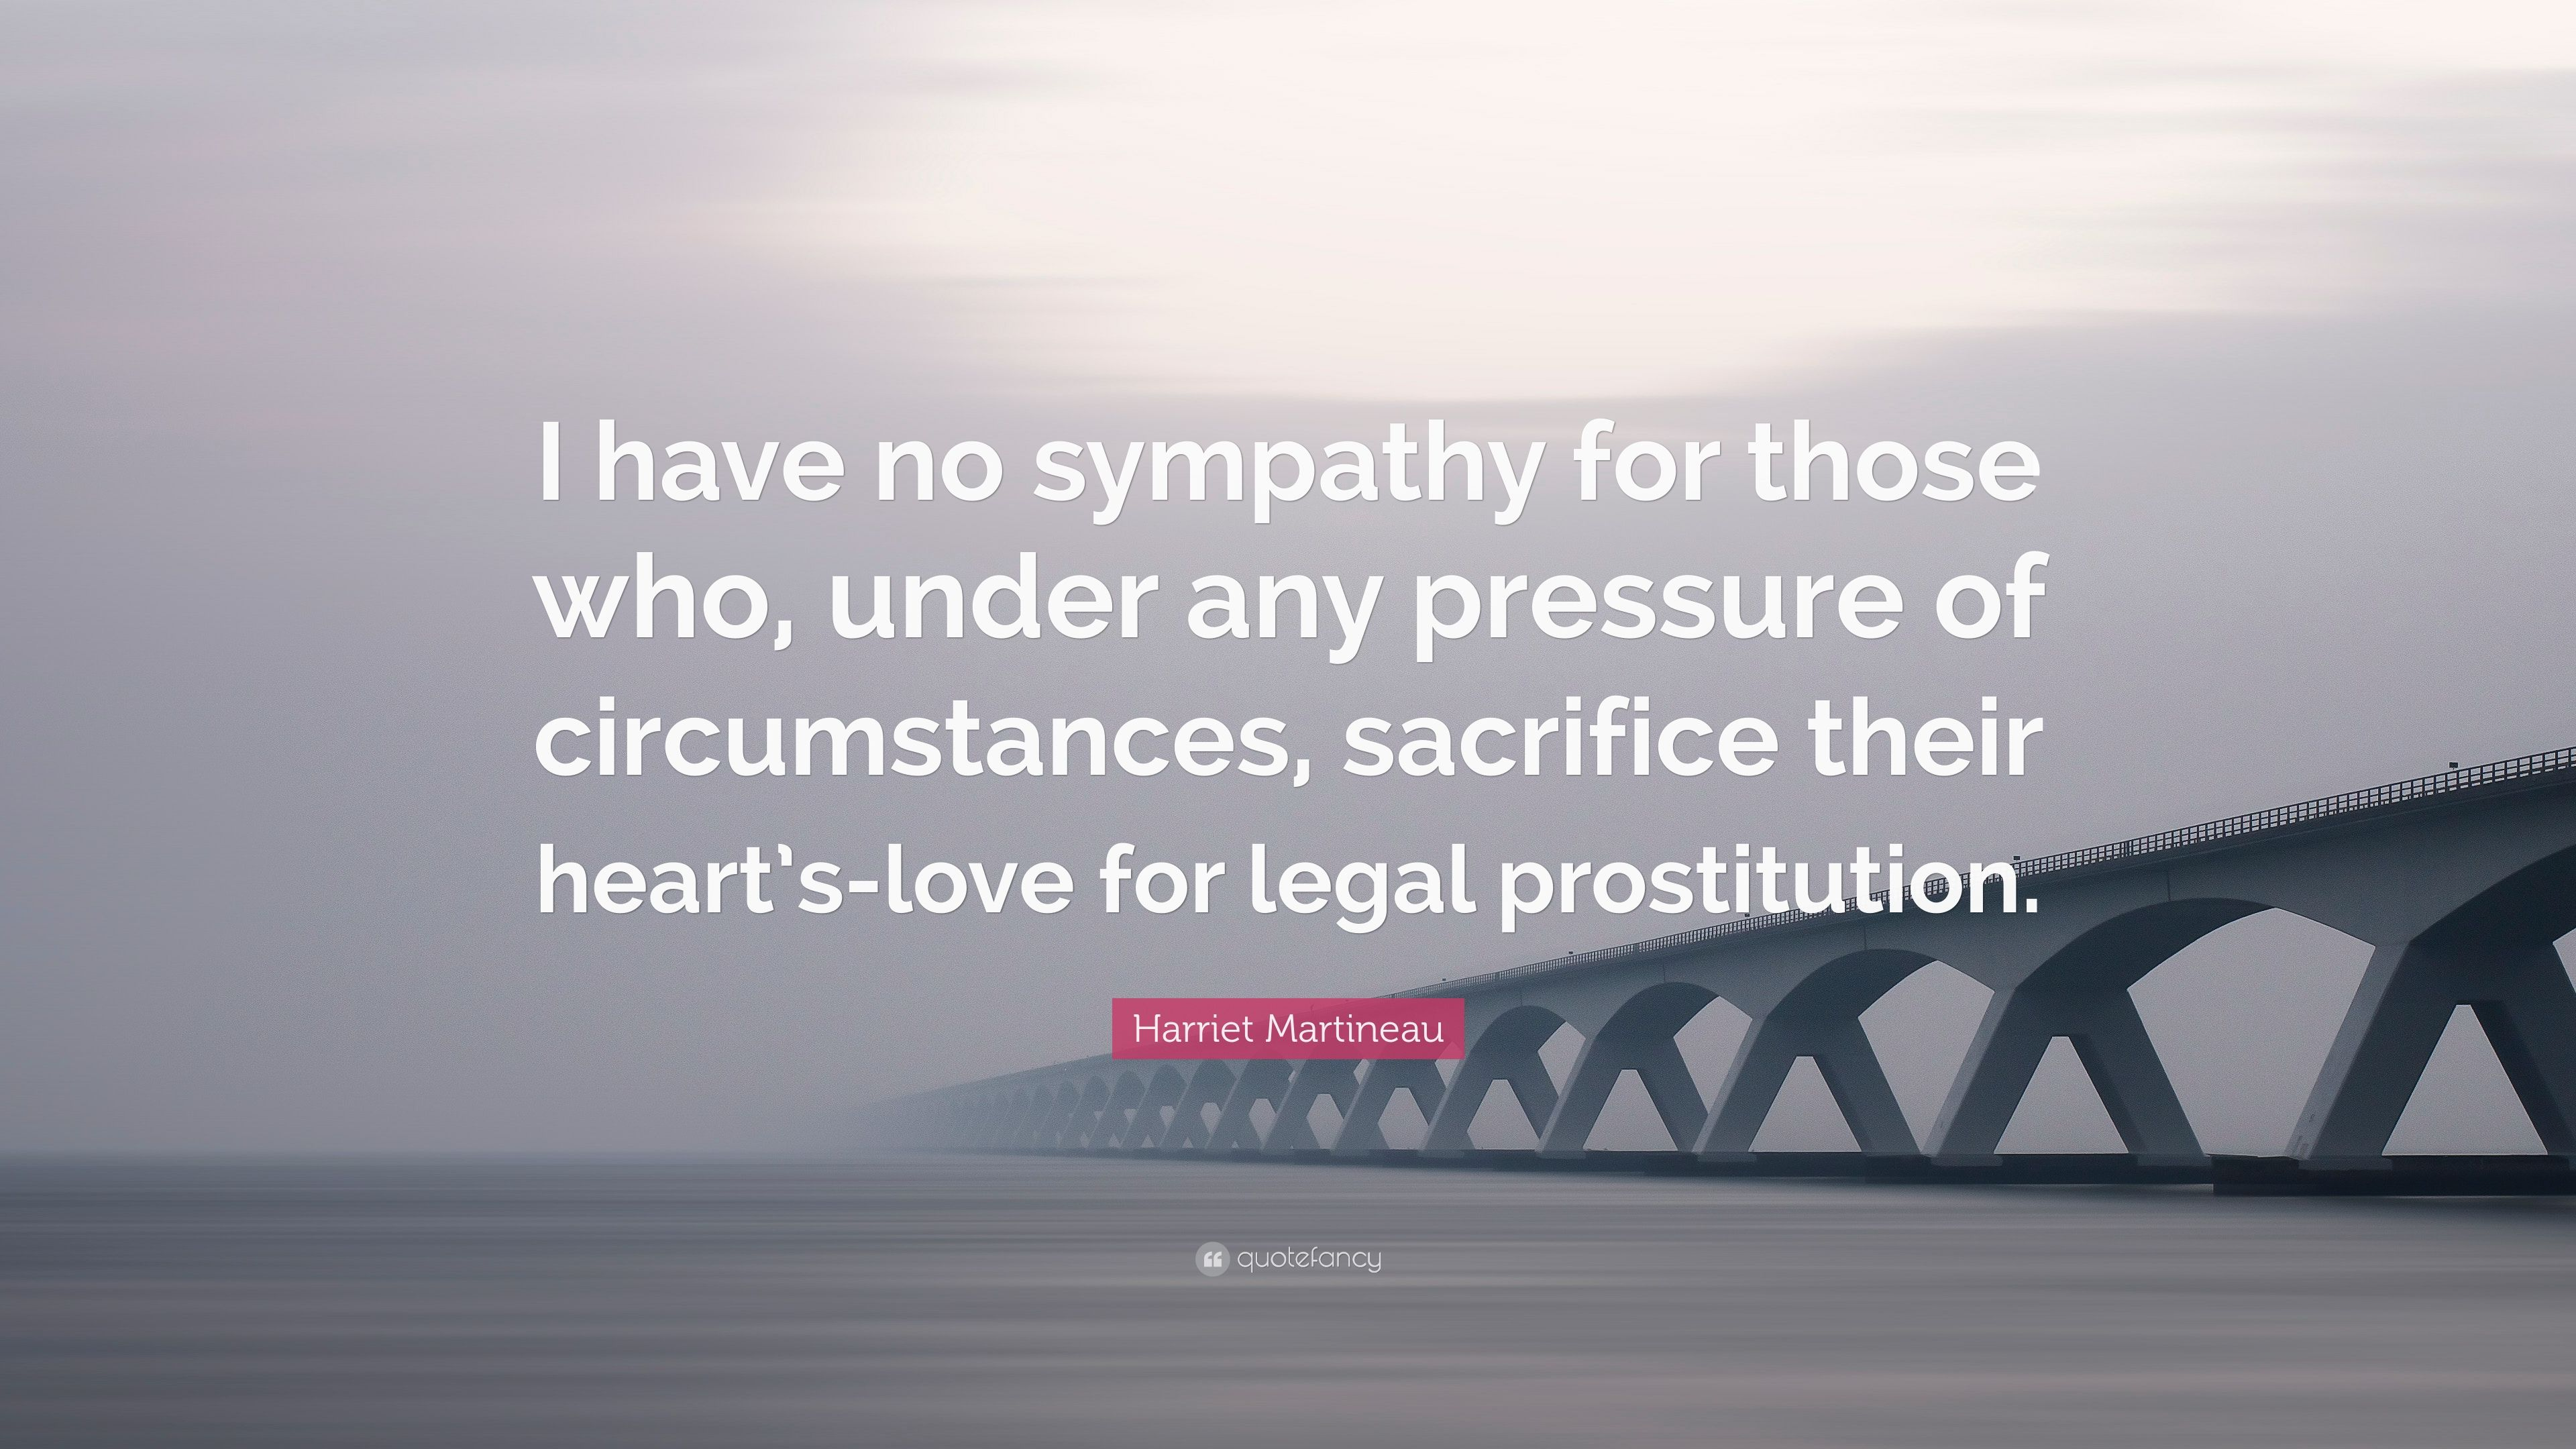 Harriet martineau quote i have no sympathy for those who under harriet martineau quote i have no sympathy for those who under any pressure thecheapjerseys Gallery